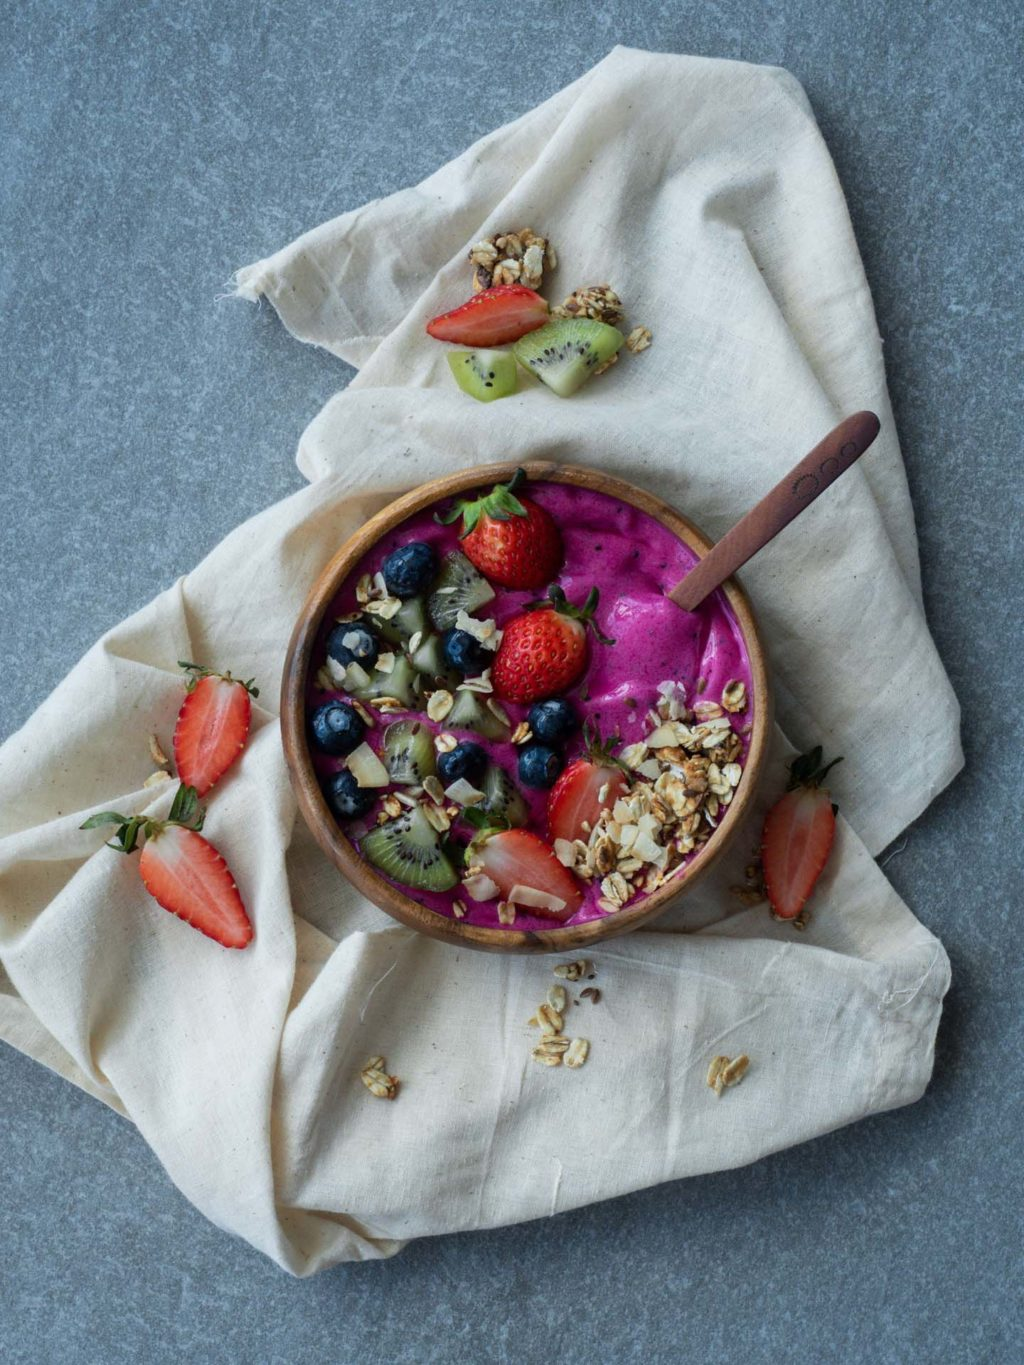 Le guide healthy Lucile Champy